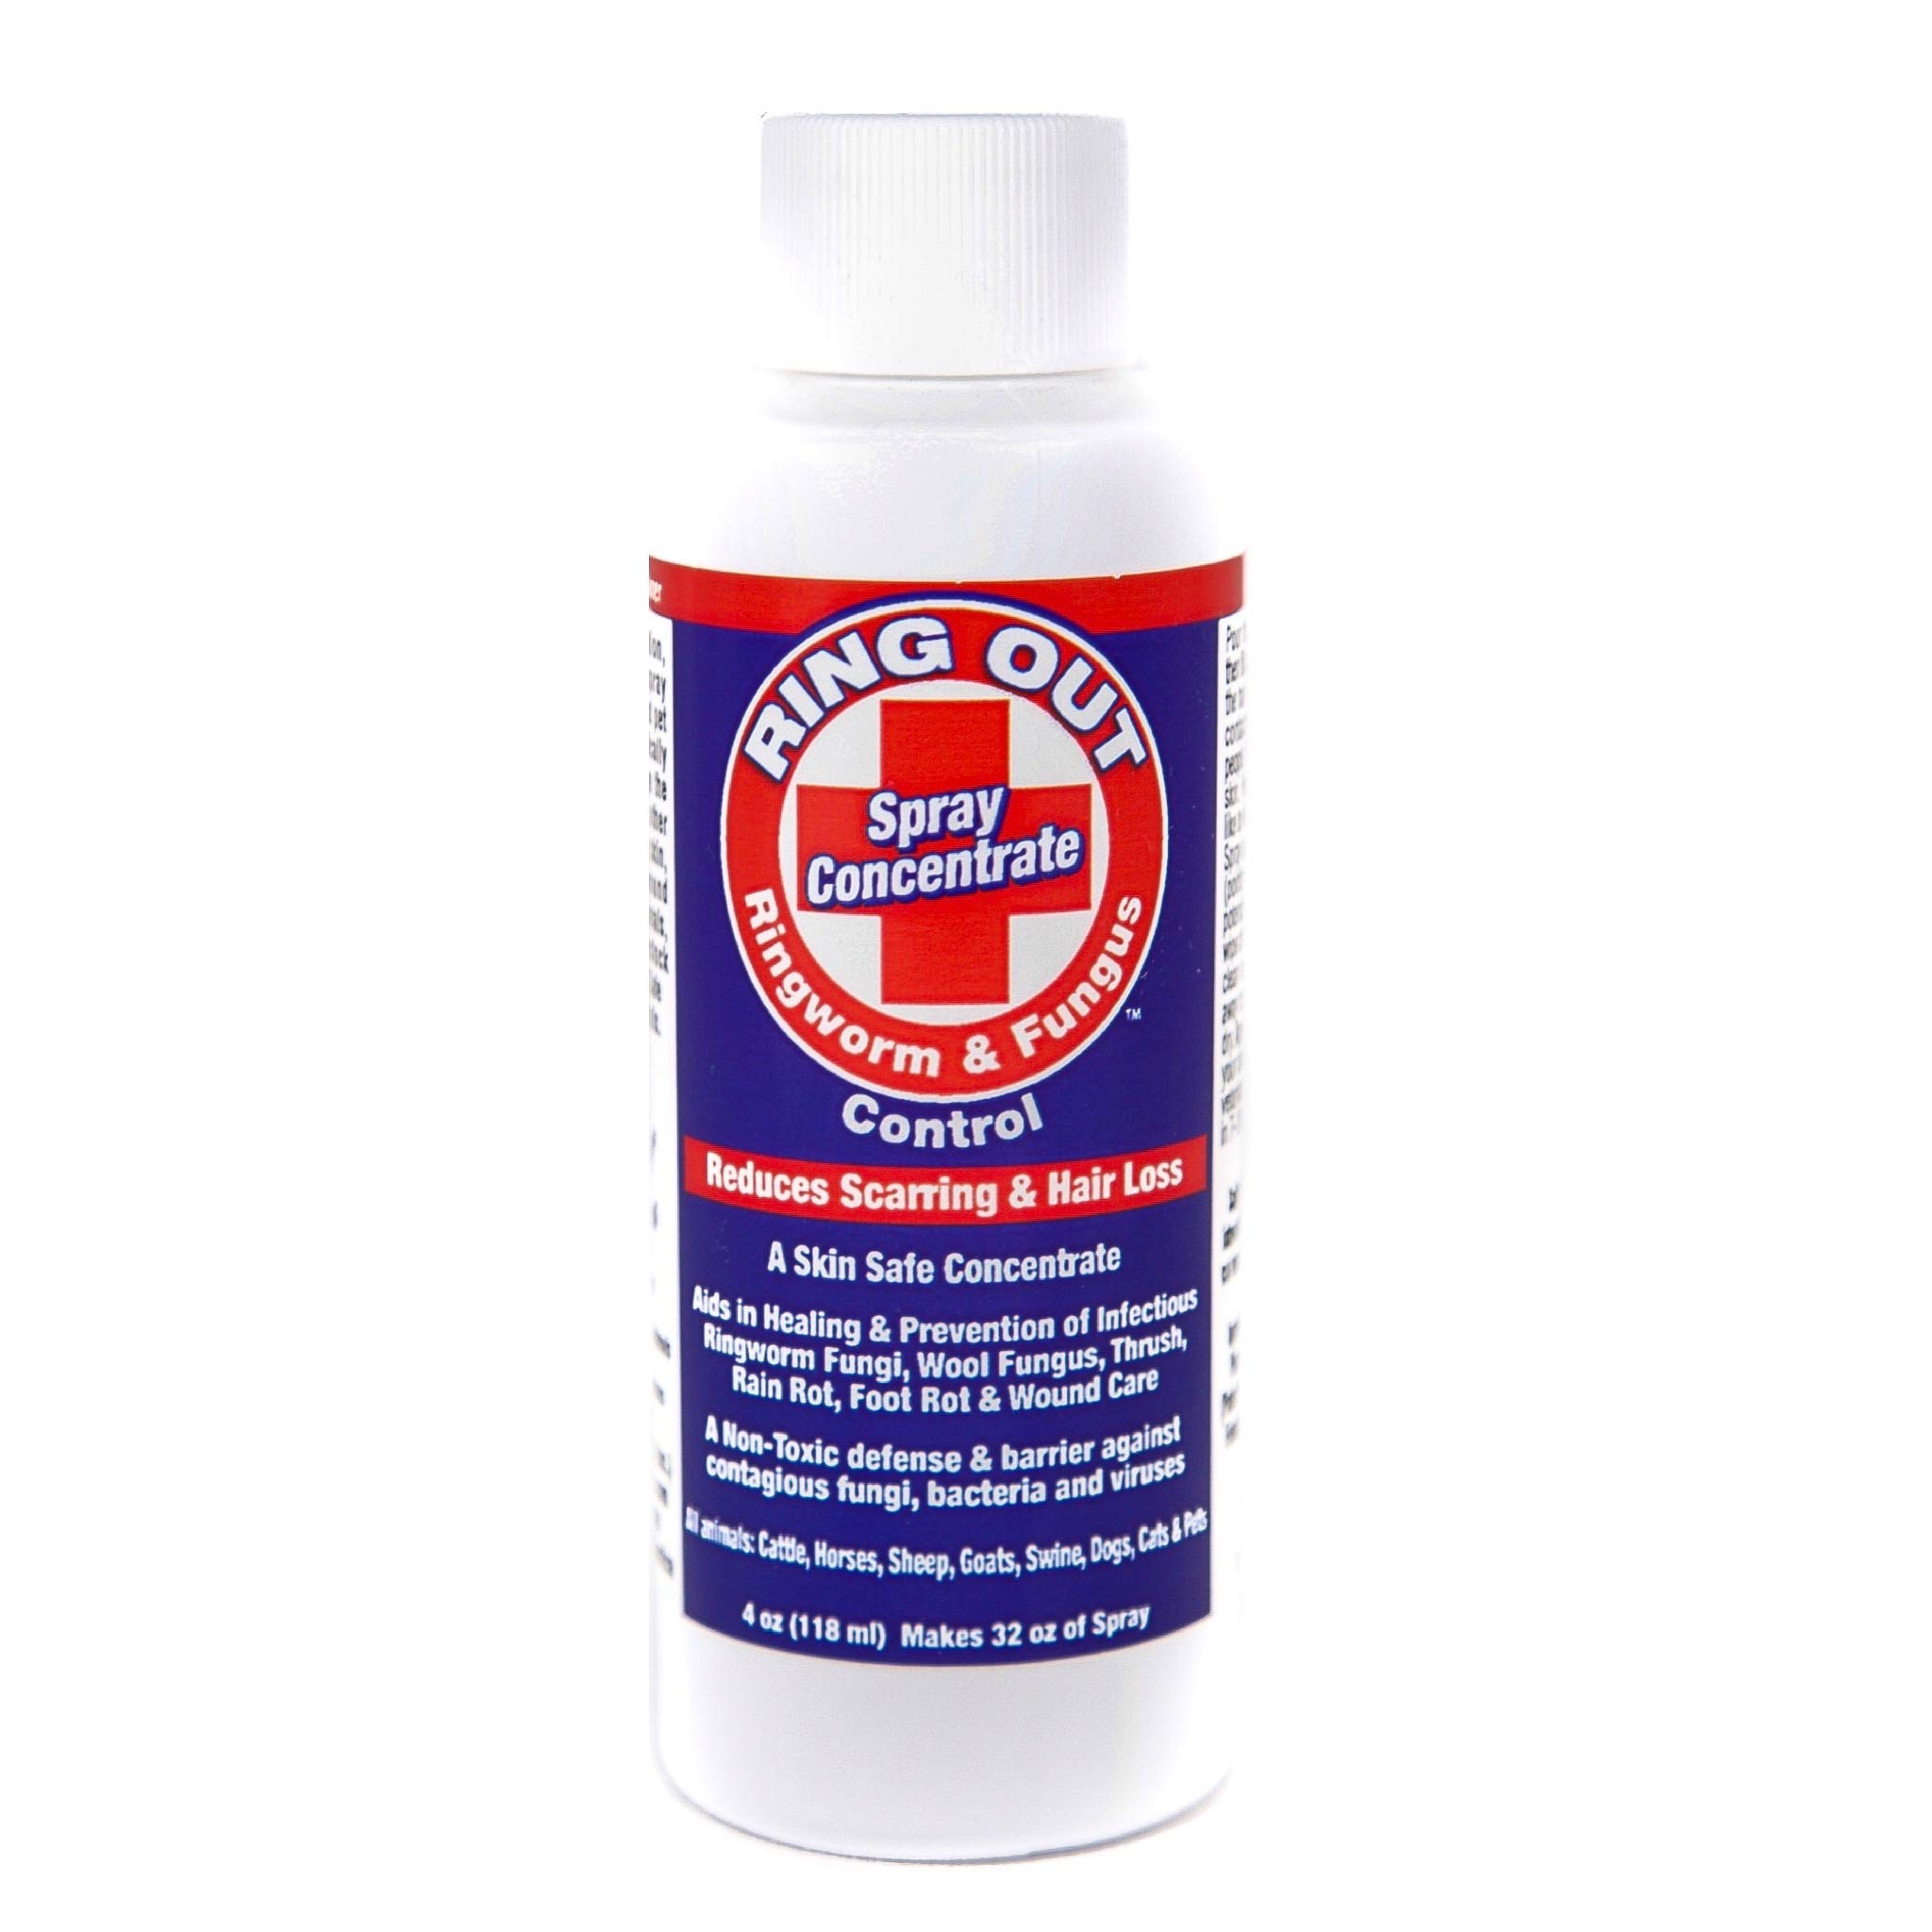 Ring Out - Ringworm & Fungus Control. Treatment and Prevention for Cats, Dogs, Sheep, Goats, Cattle, Horses, All Pets and Livestock. 4 oz. Concentrate Makes 32 oz. Spray. by Ring Out